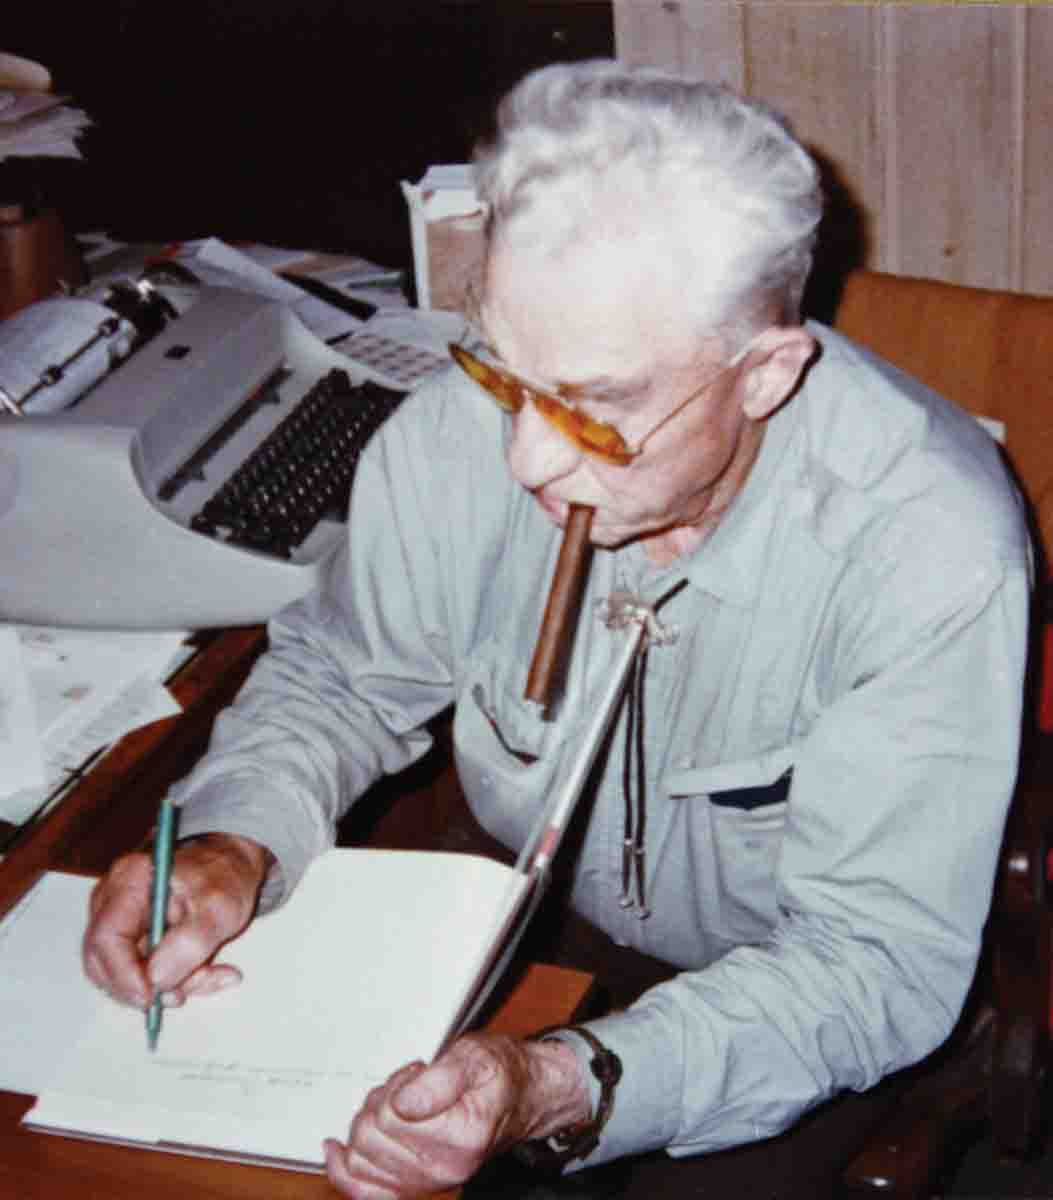 Elmer Keith, with his ever-present cigar, autographing one of his books.